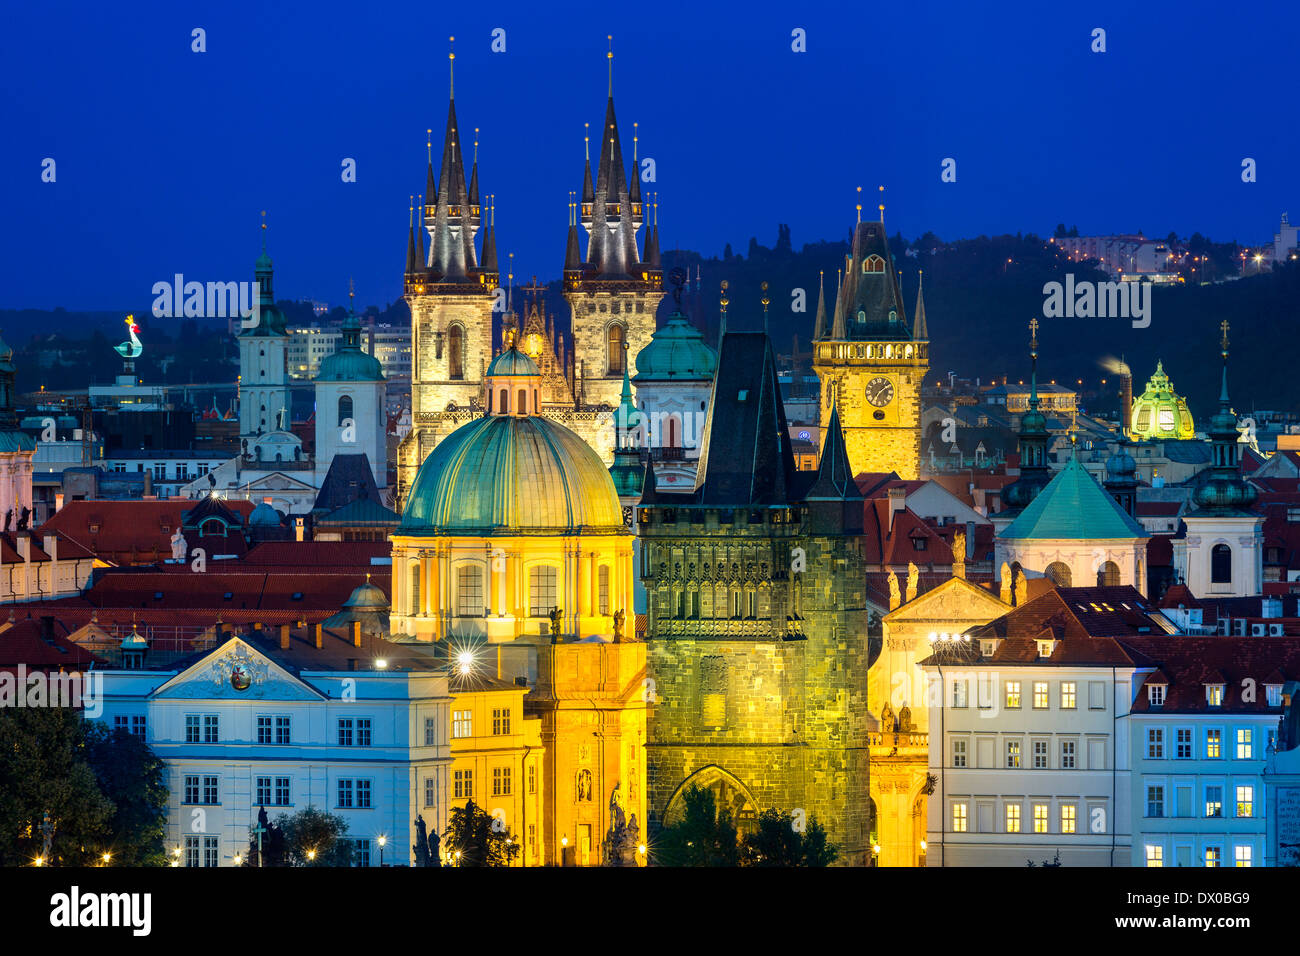 Czech Republic, Skyline of Prague at Dusk - Stock Image